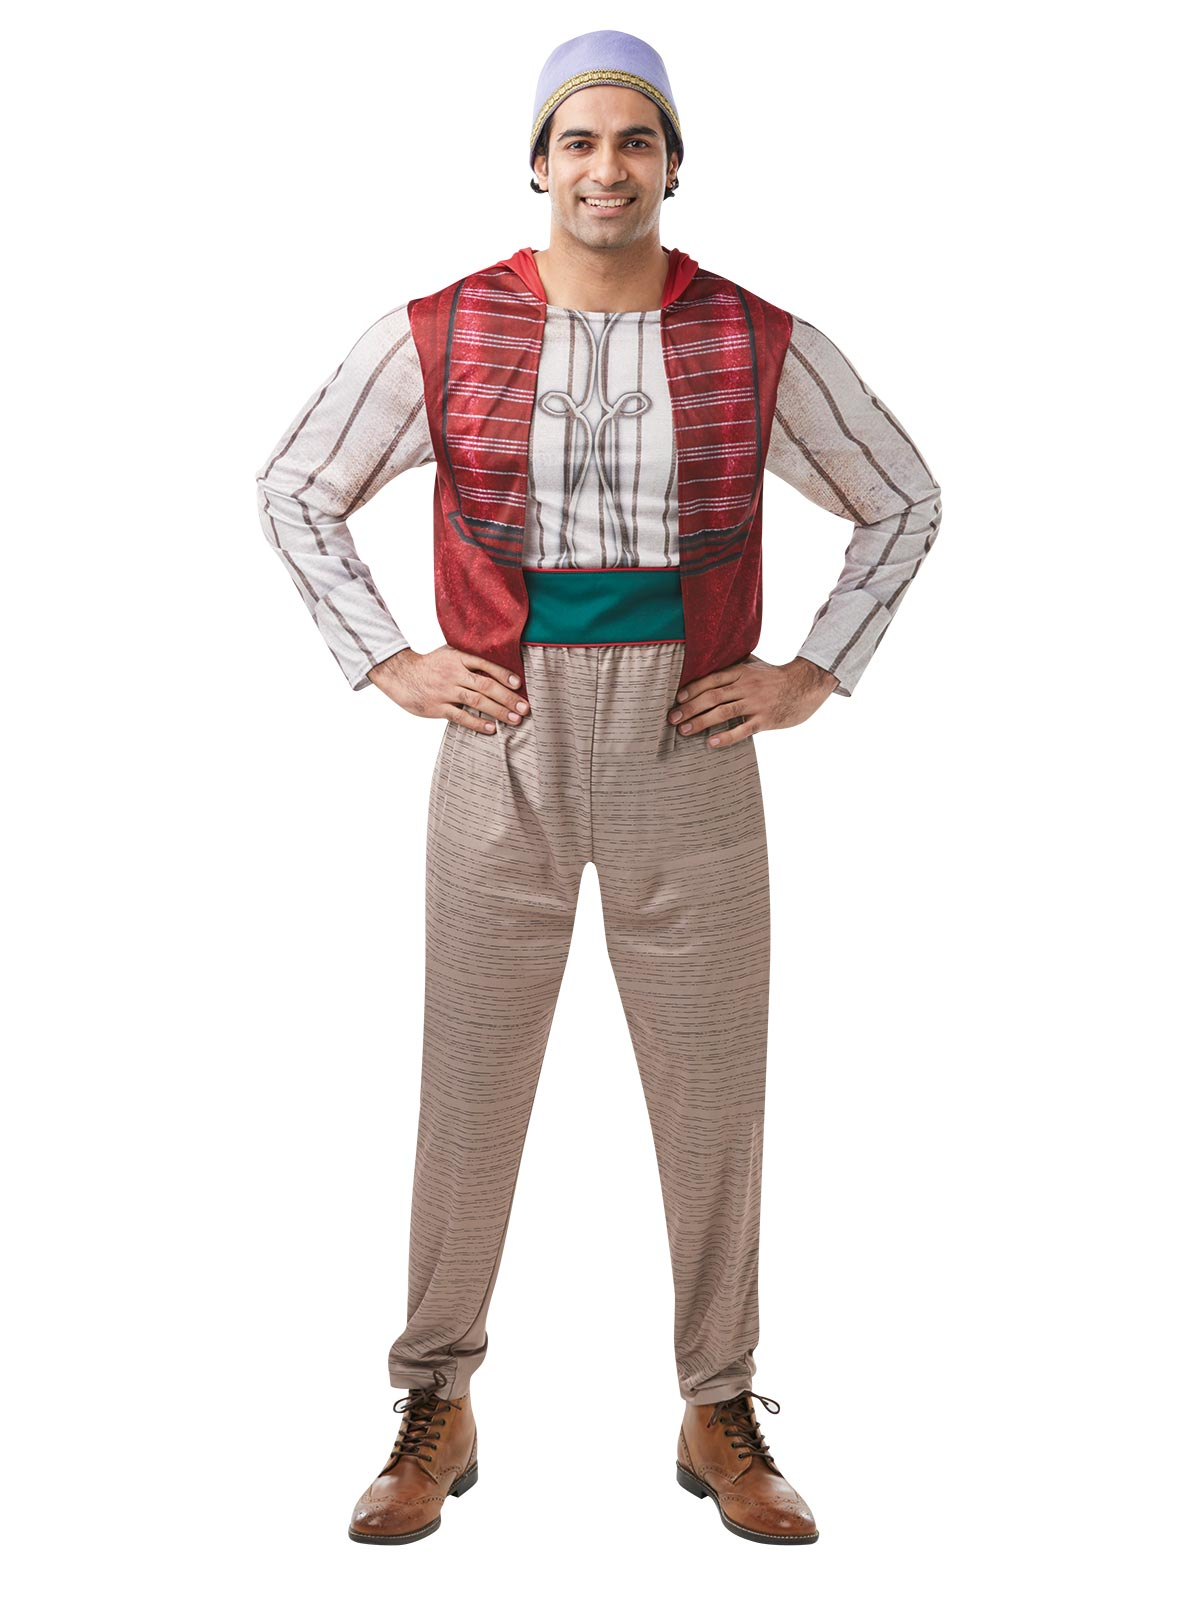 Aladdin Live Action Costume - Buy Online Only